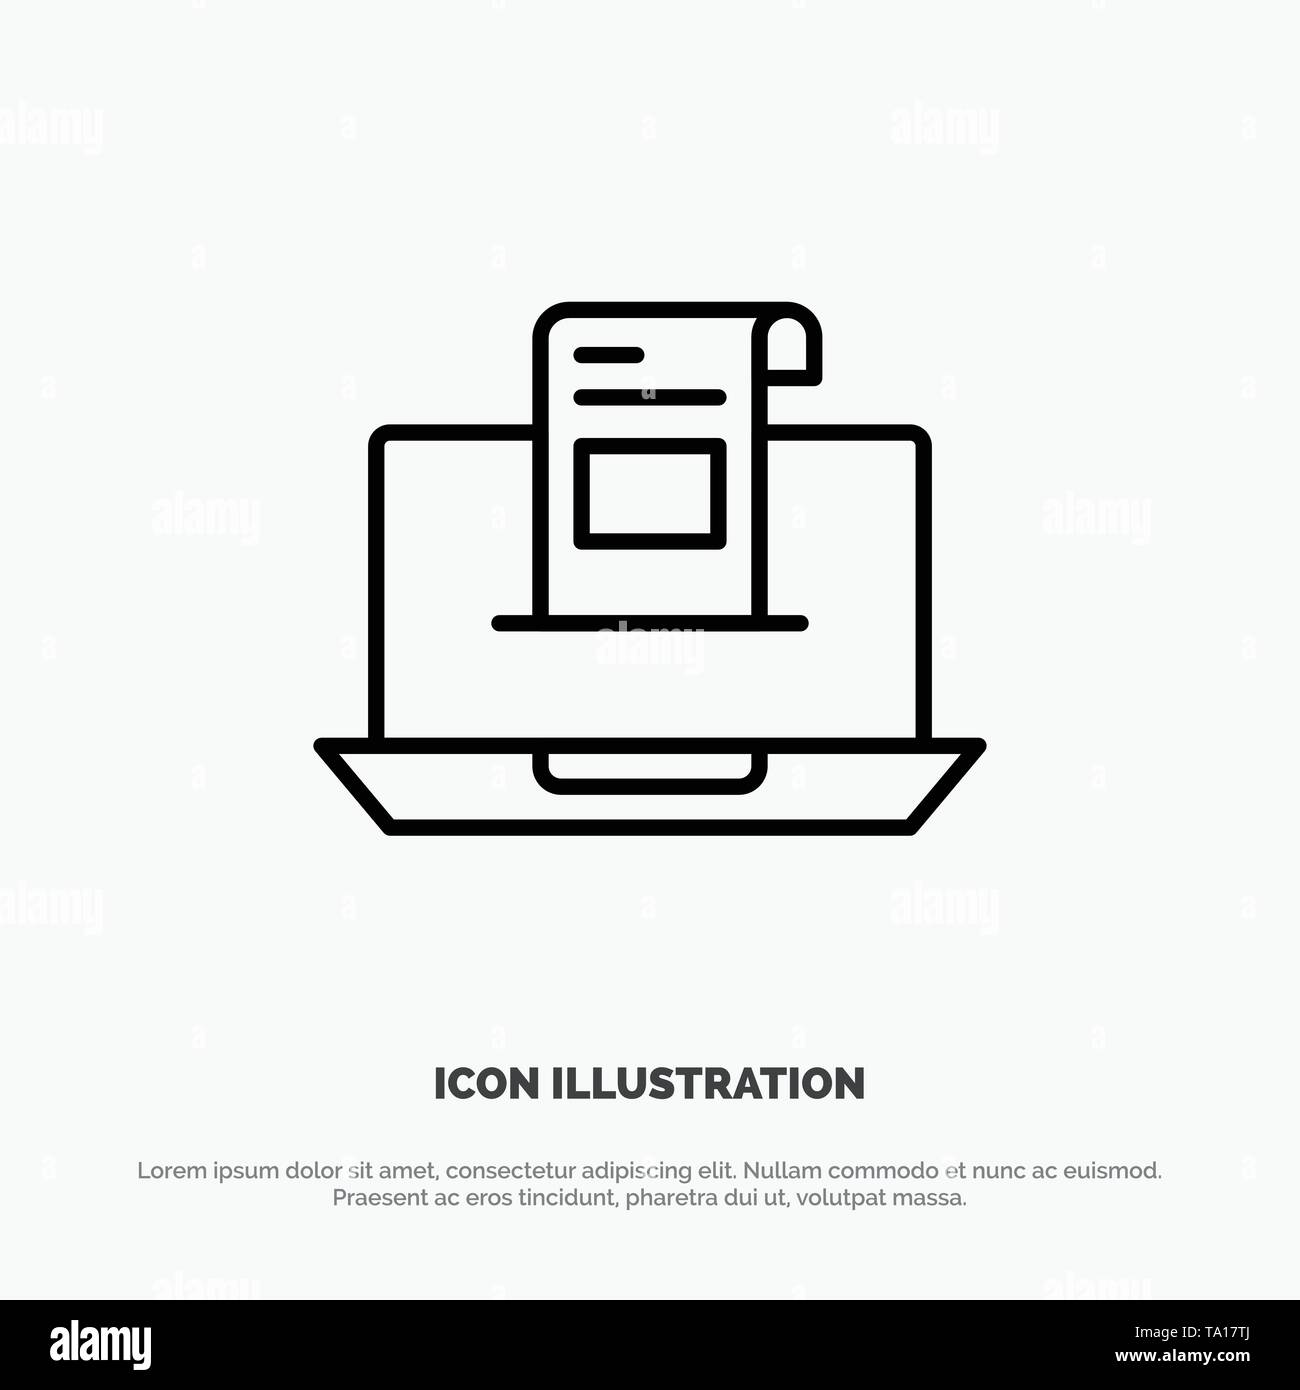 Email, Communication, Emails, Envelope, Letter, Mail, Message Line Icon Vector - Stock Image